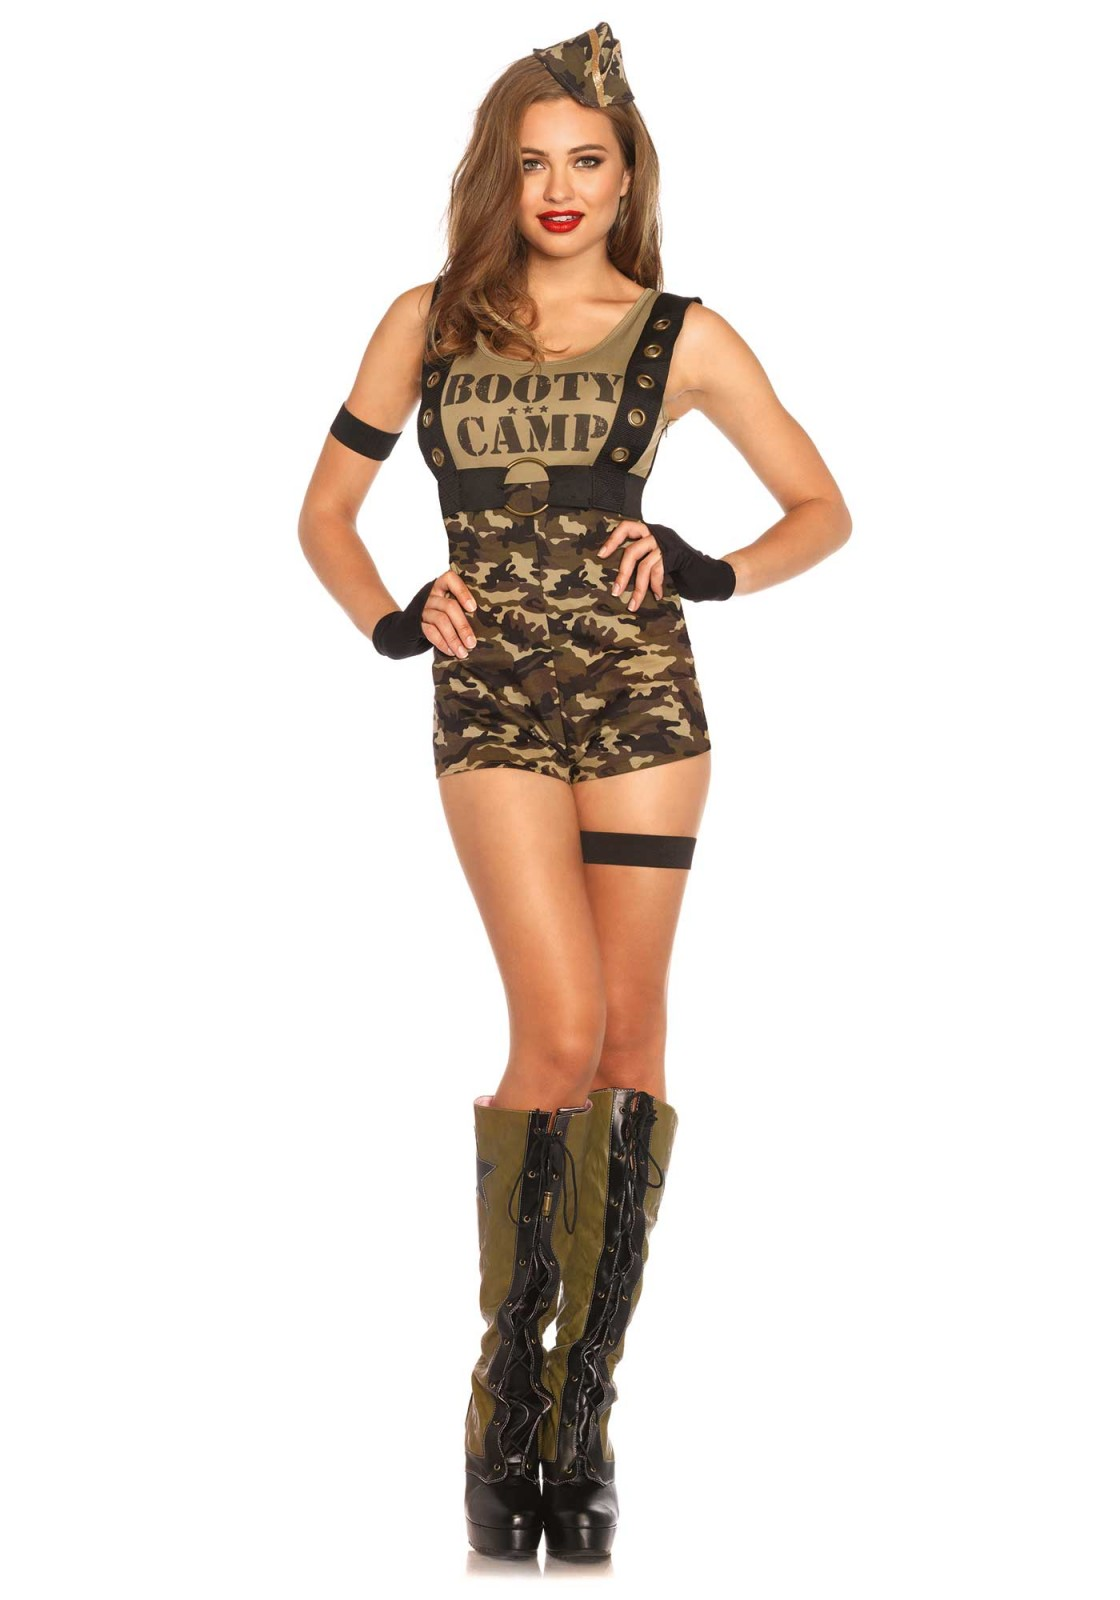 Bootcamp is a fysical and mental challenge. Survive the jungle in style. This 6PC camouflage costume includes a romper with oversized grommet suspenders, harness belt, arm band, garter, fingerless gloves and matching hat.